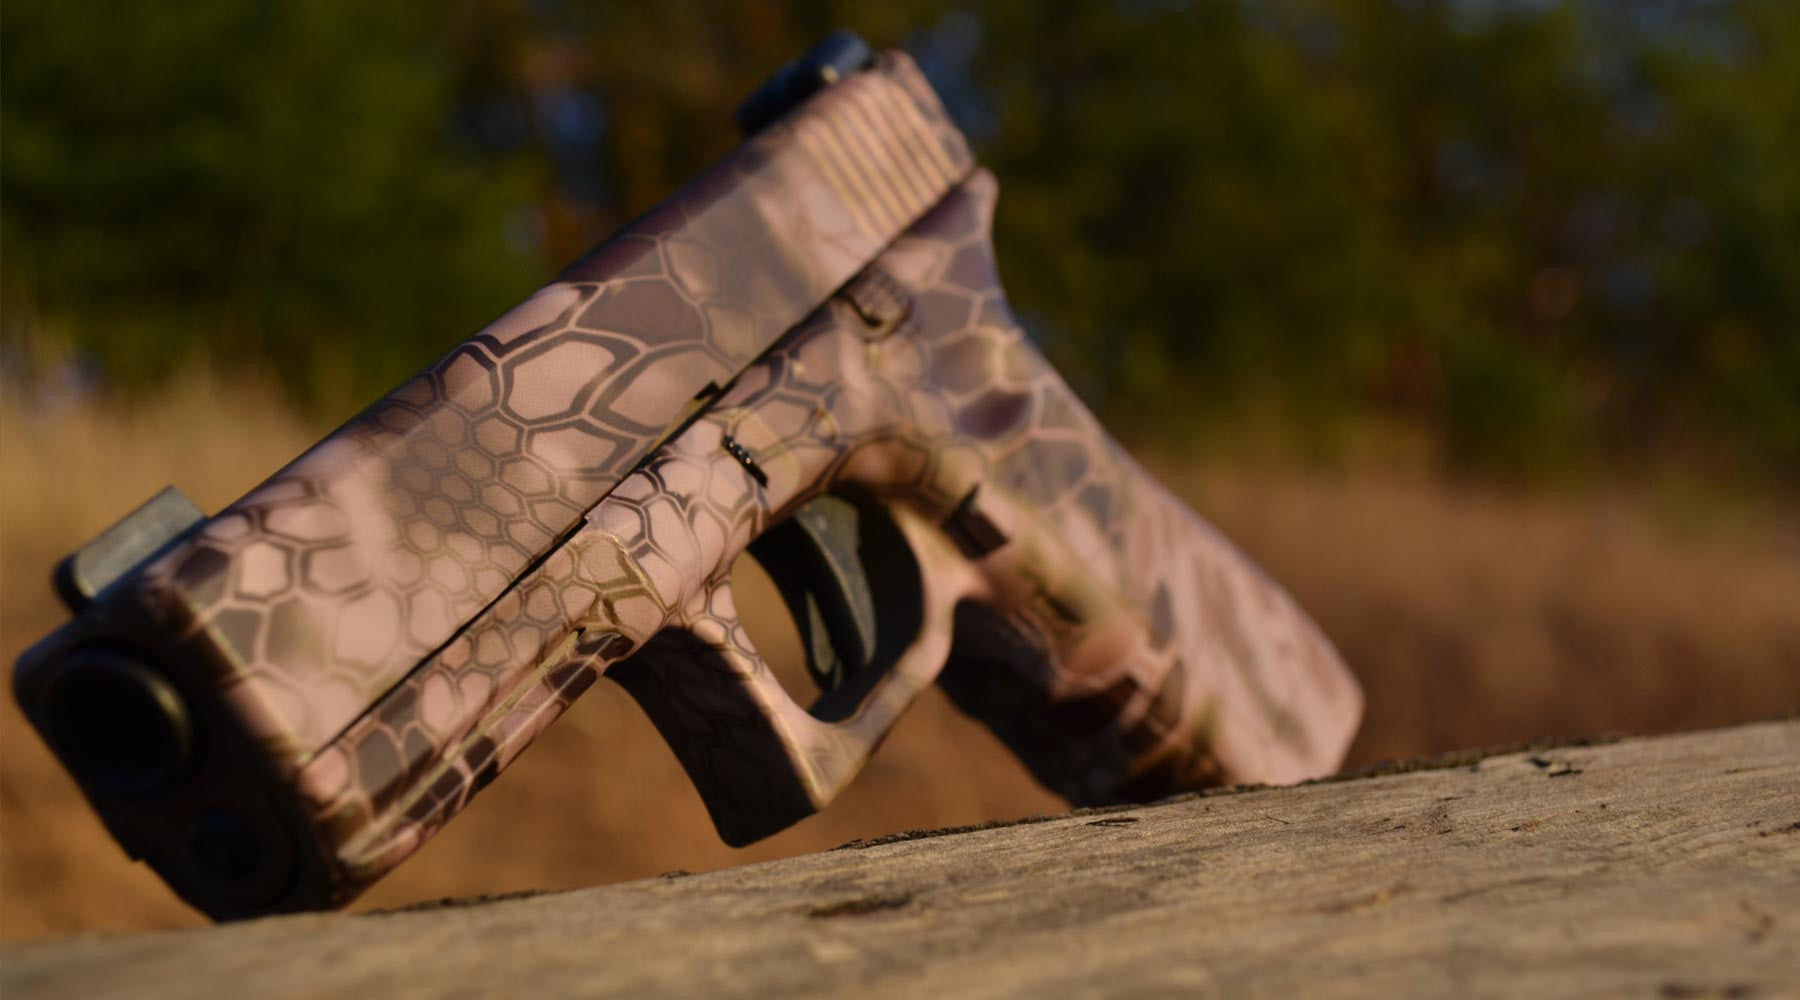 What You Need to Know About Pistol Skins and Holsters